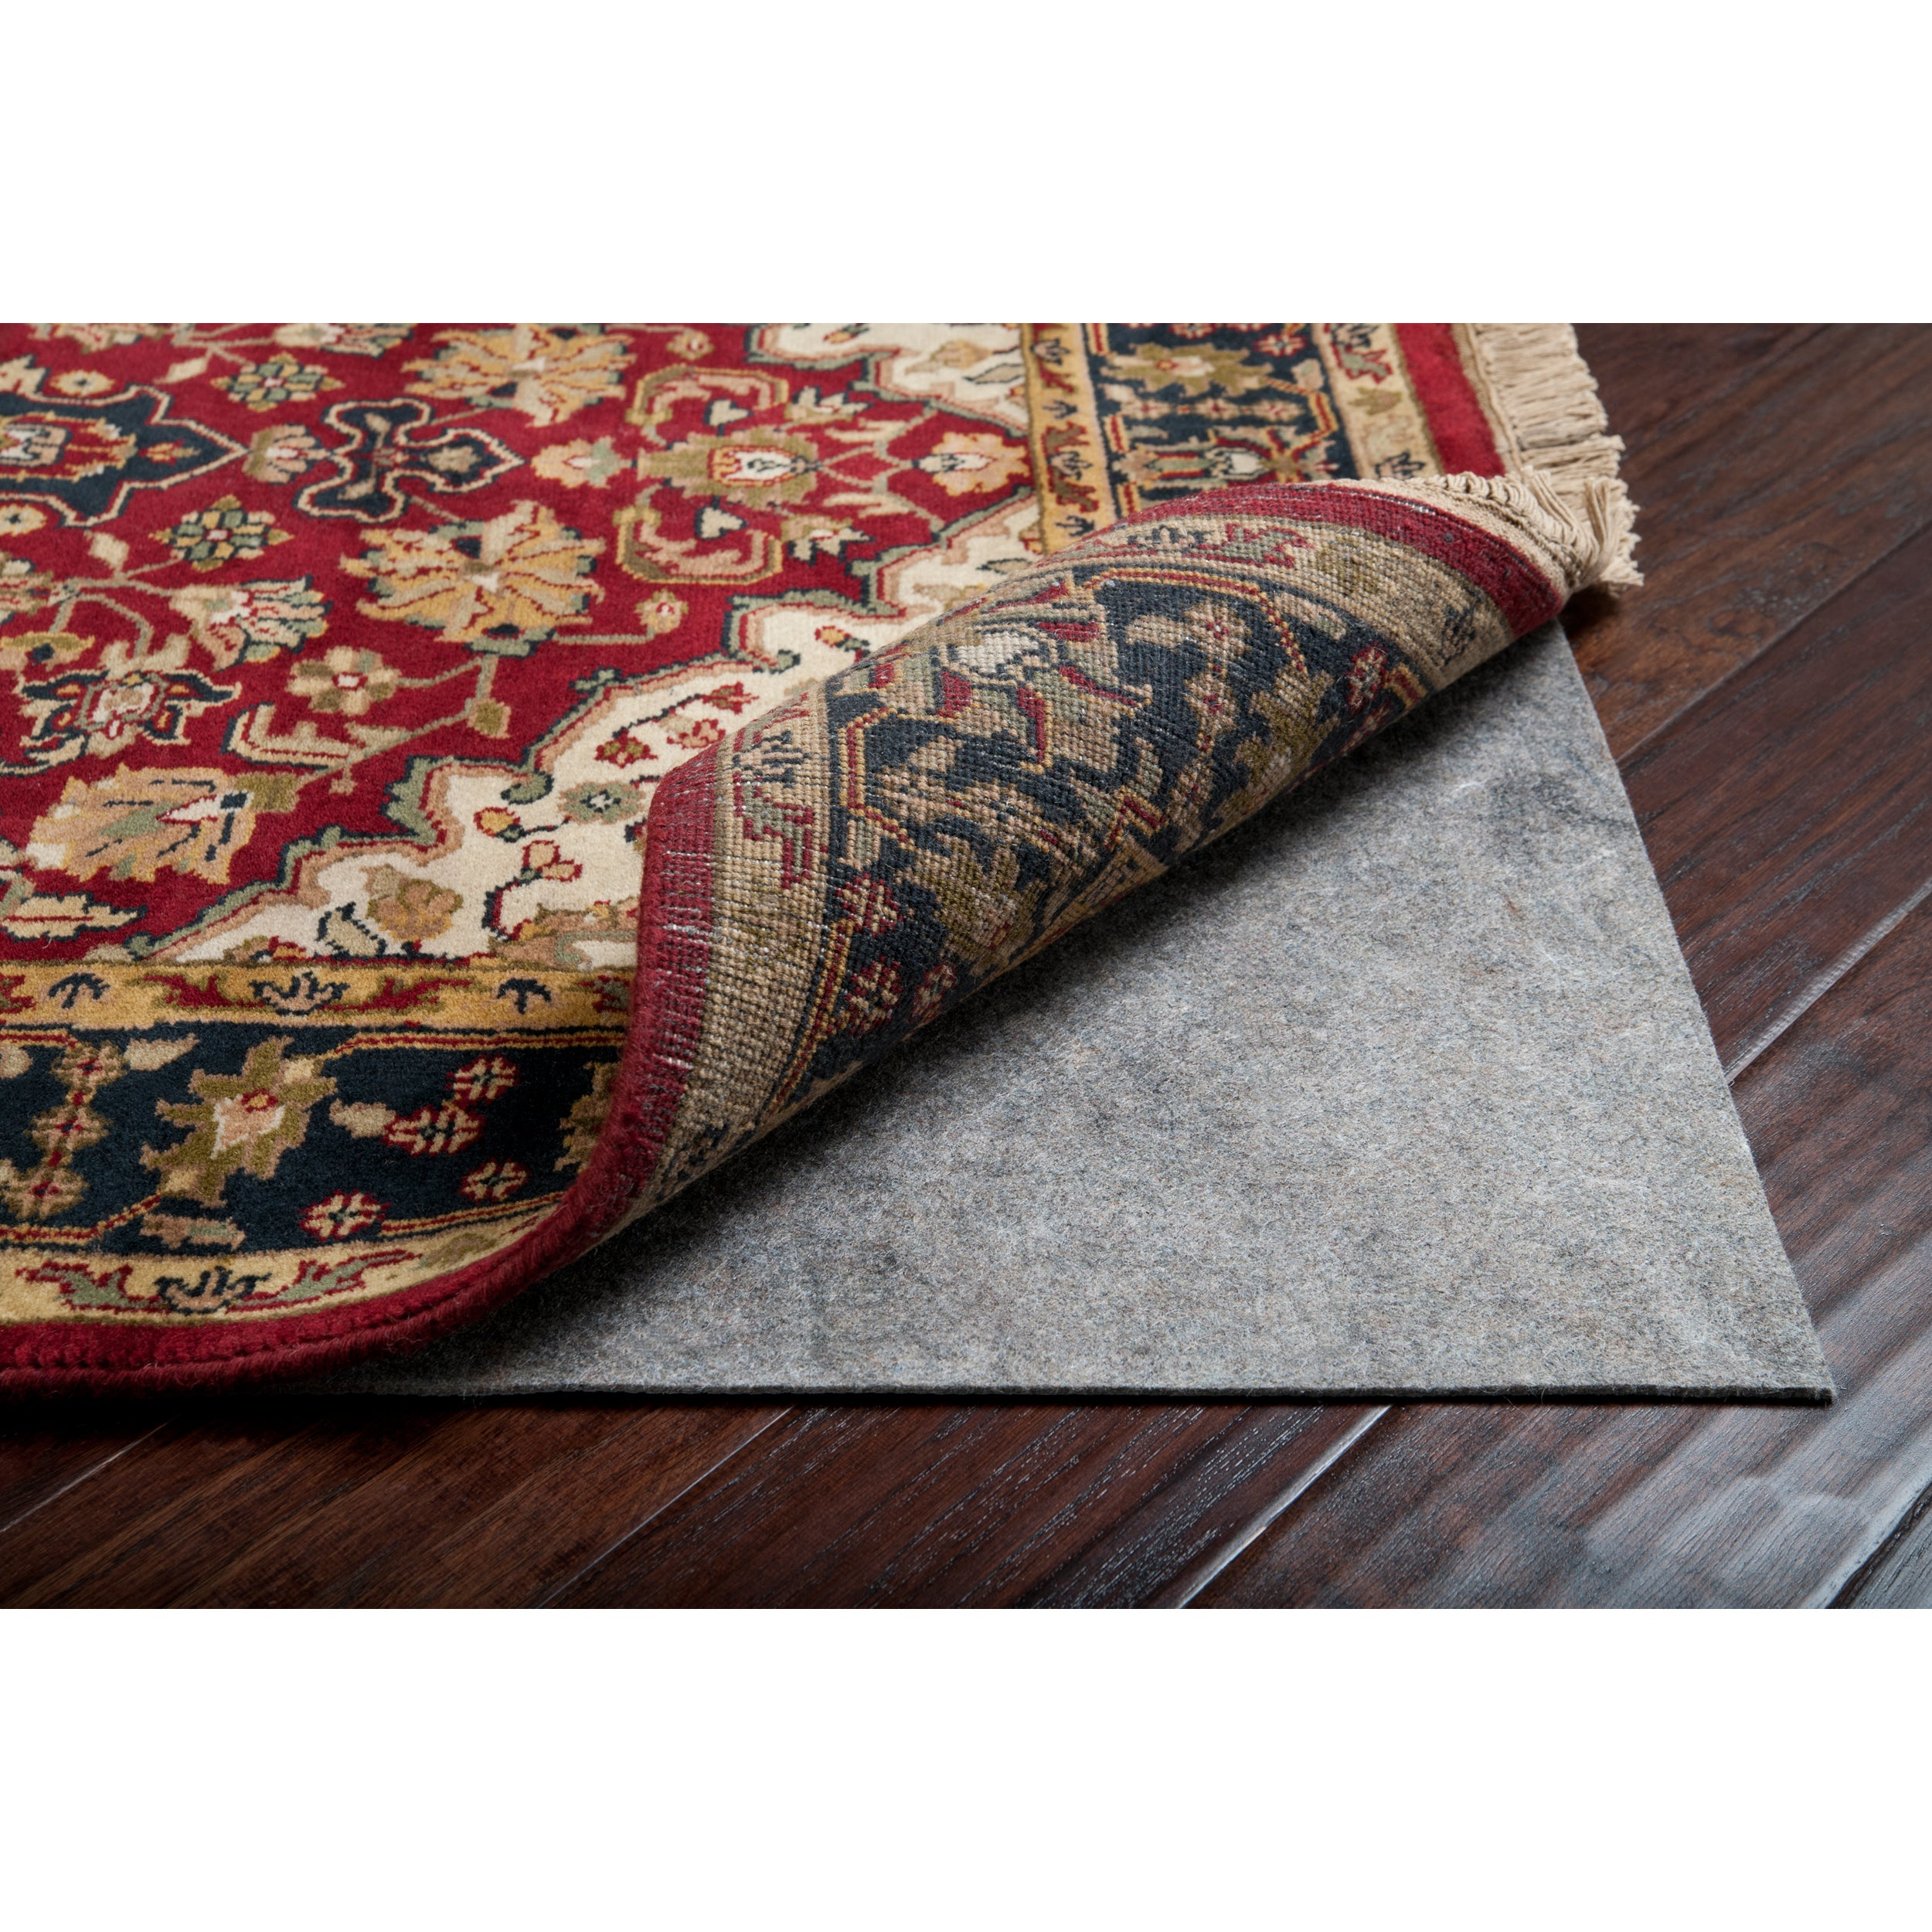 Rotell Rug Pad (9' x 13')